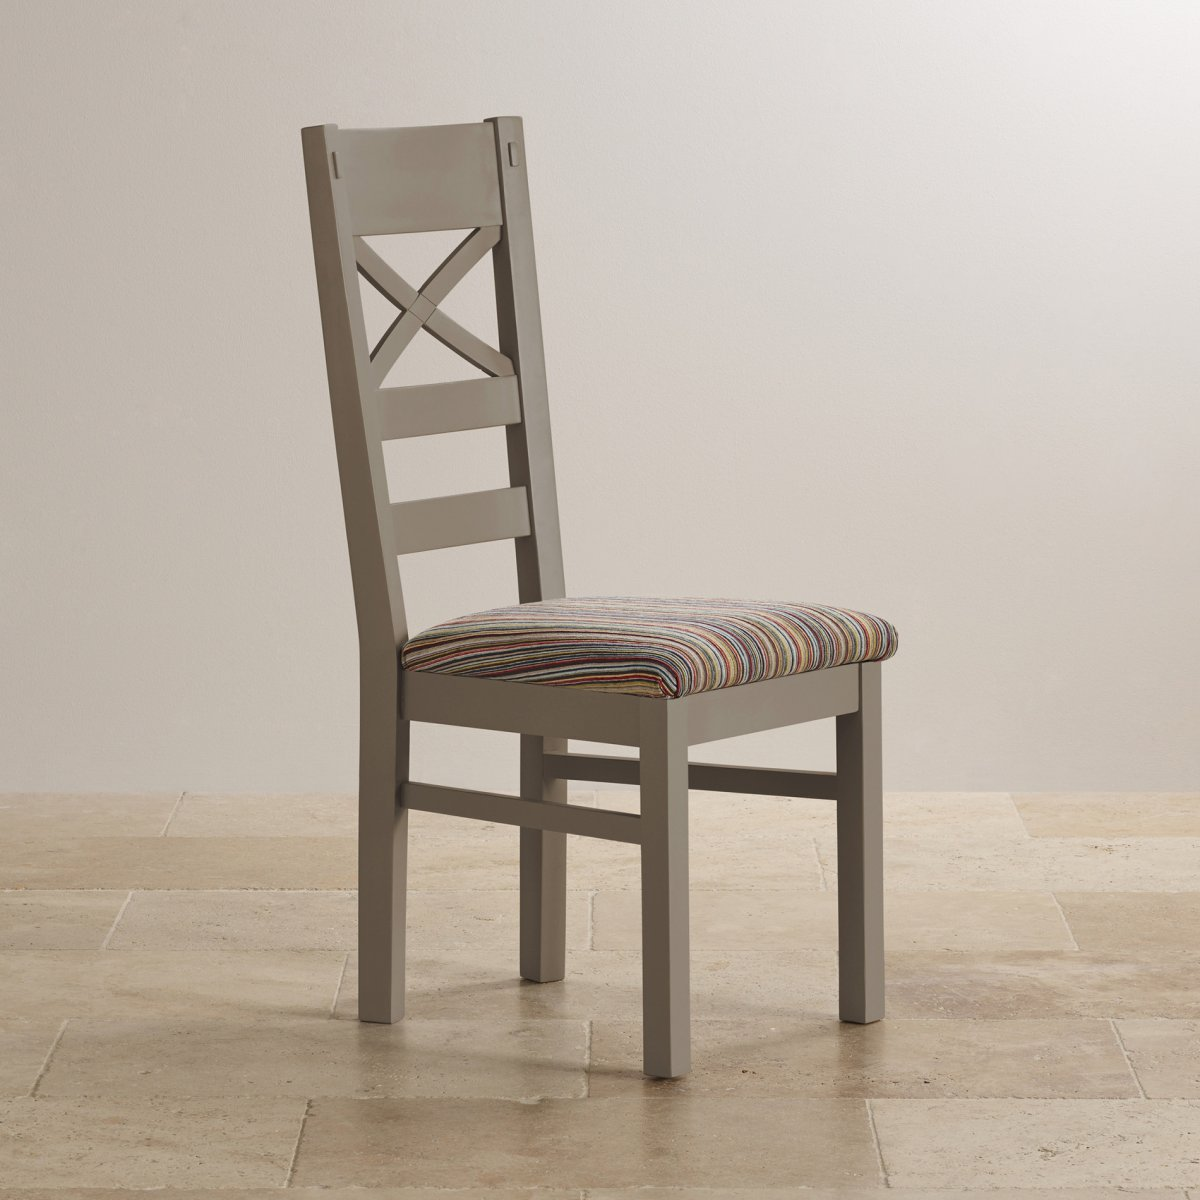 St ives dining chair in grey painted acacia striped fabric for Multi coloured fabric dining chairs